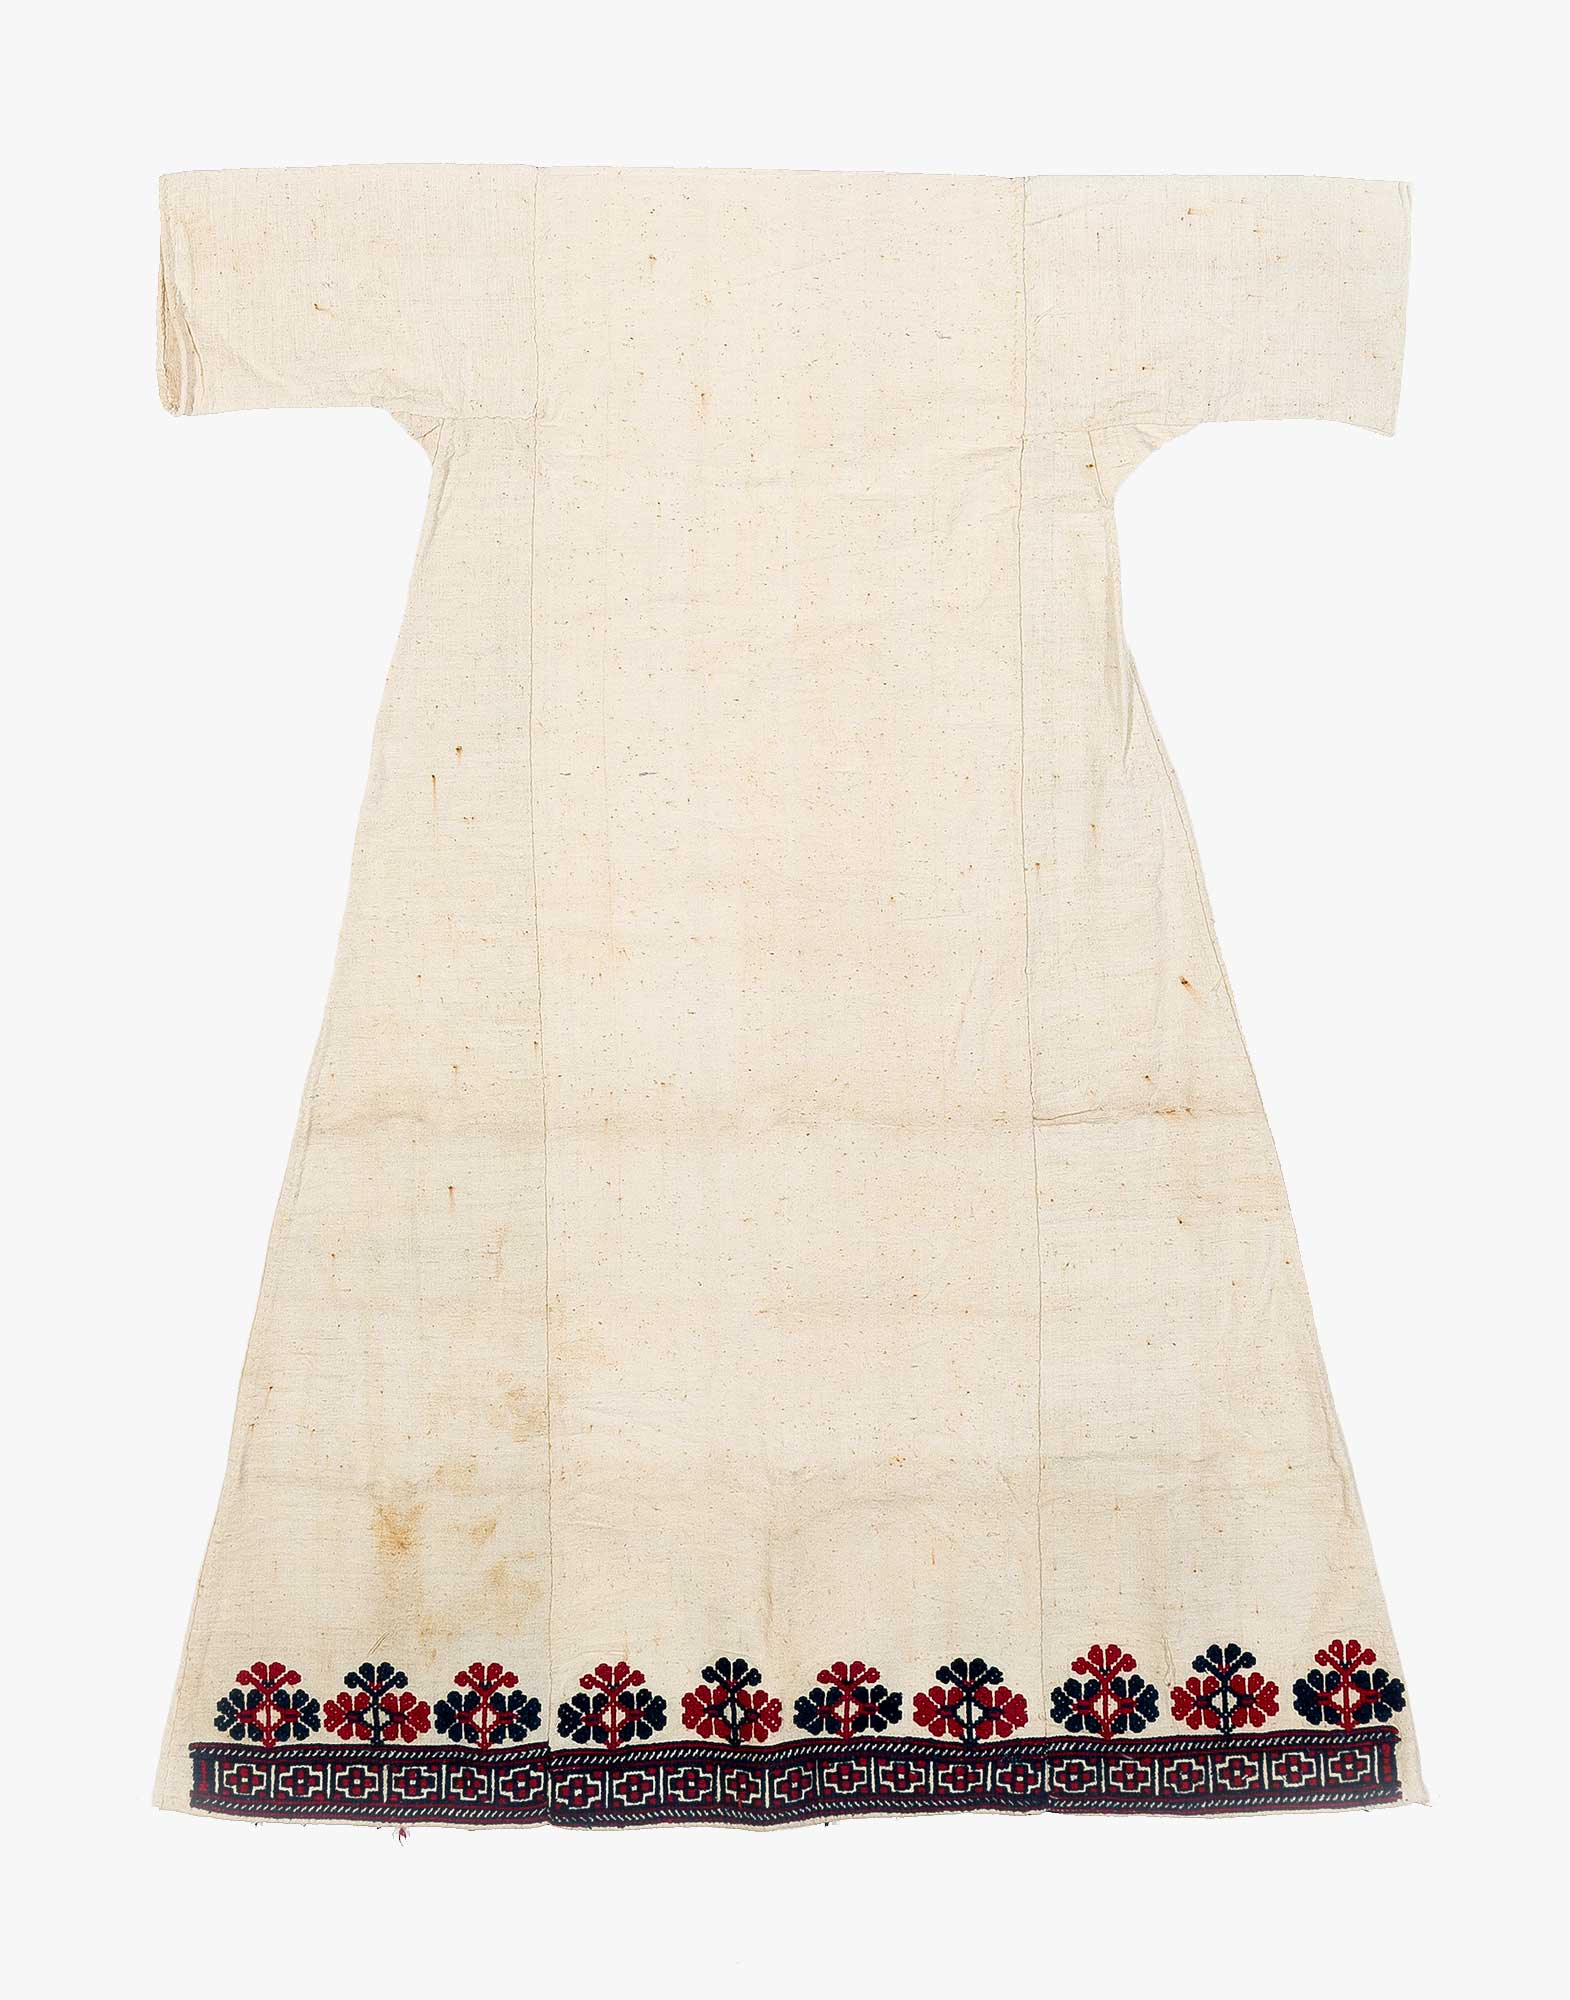 Anatolian Village Embroidered Dress